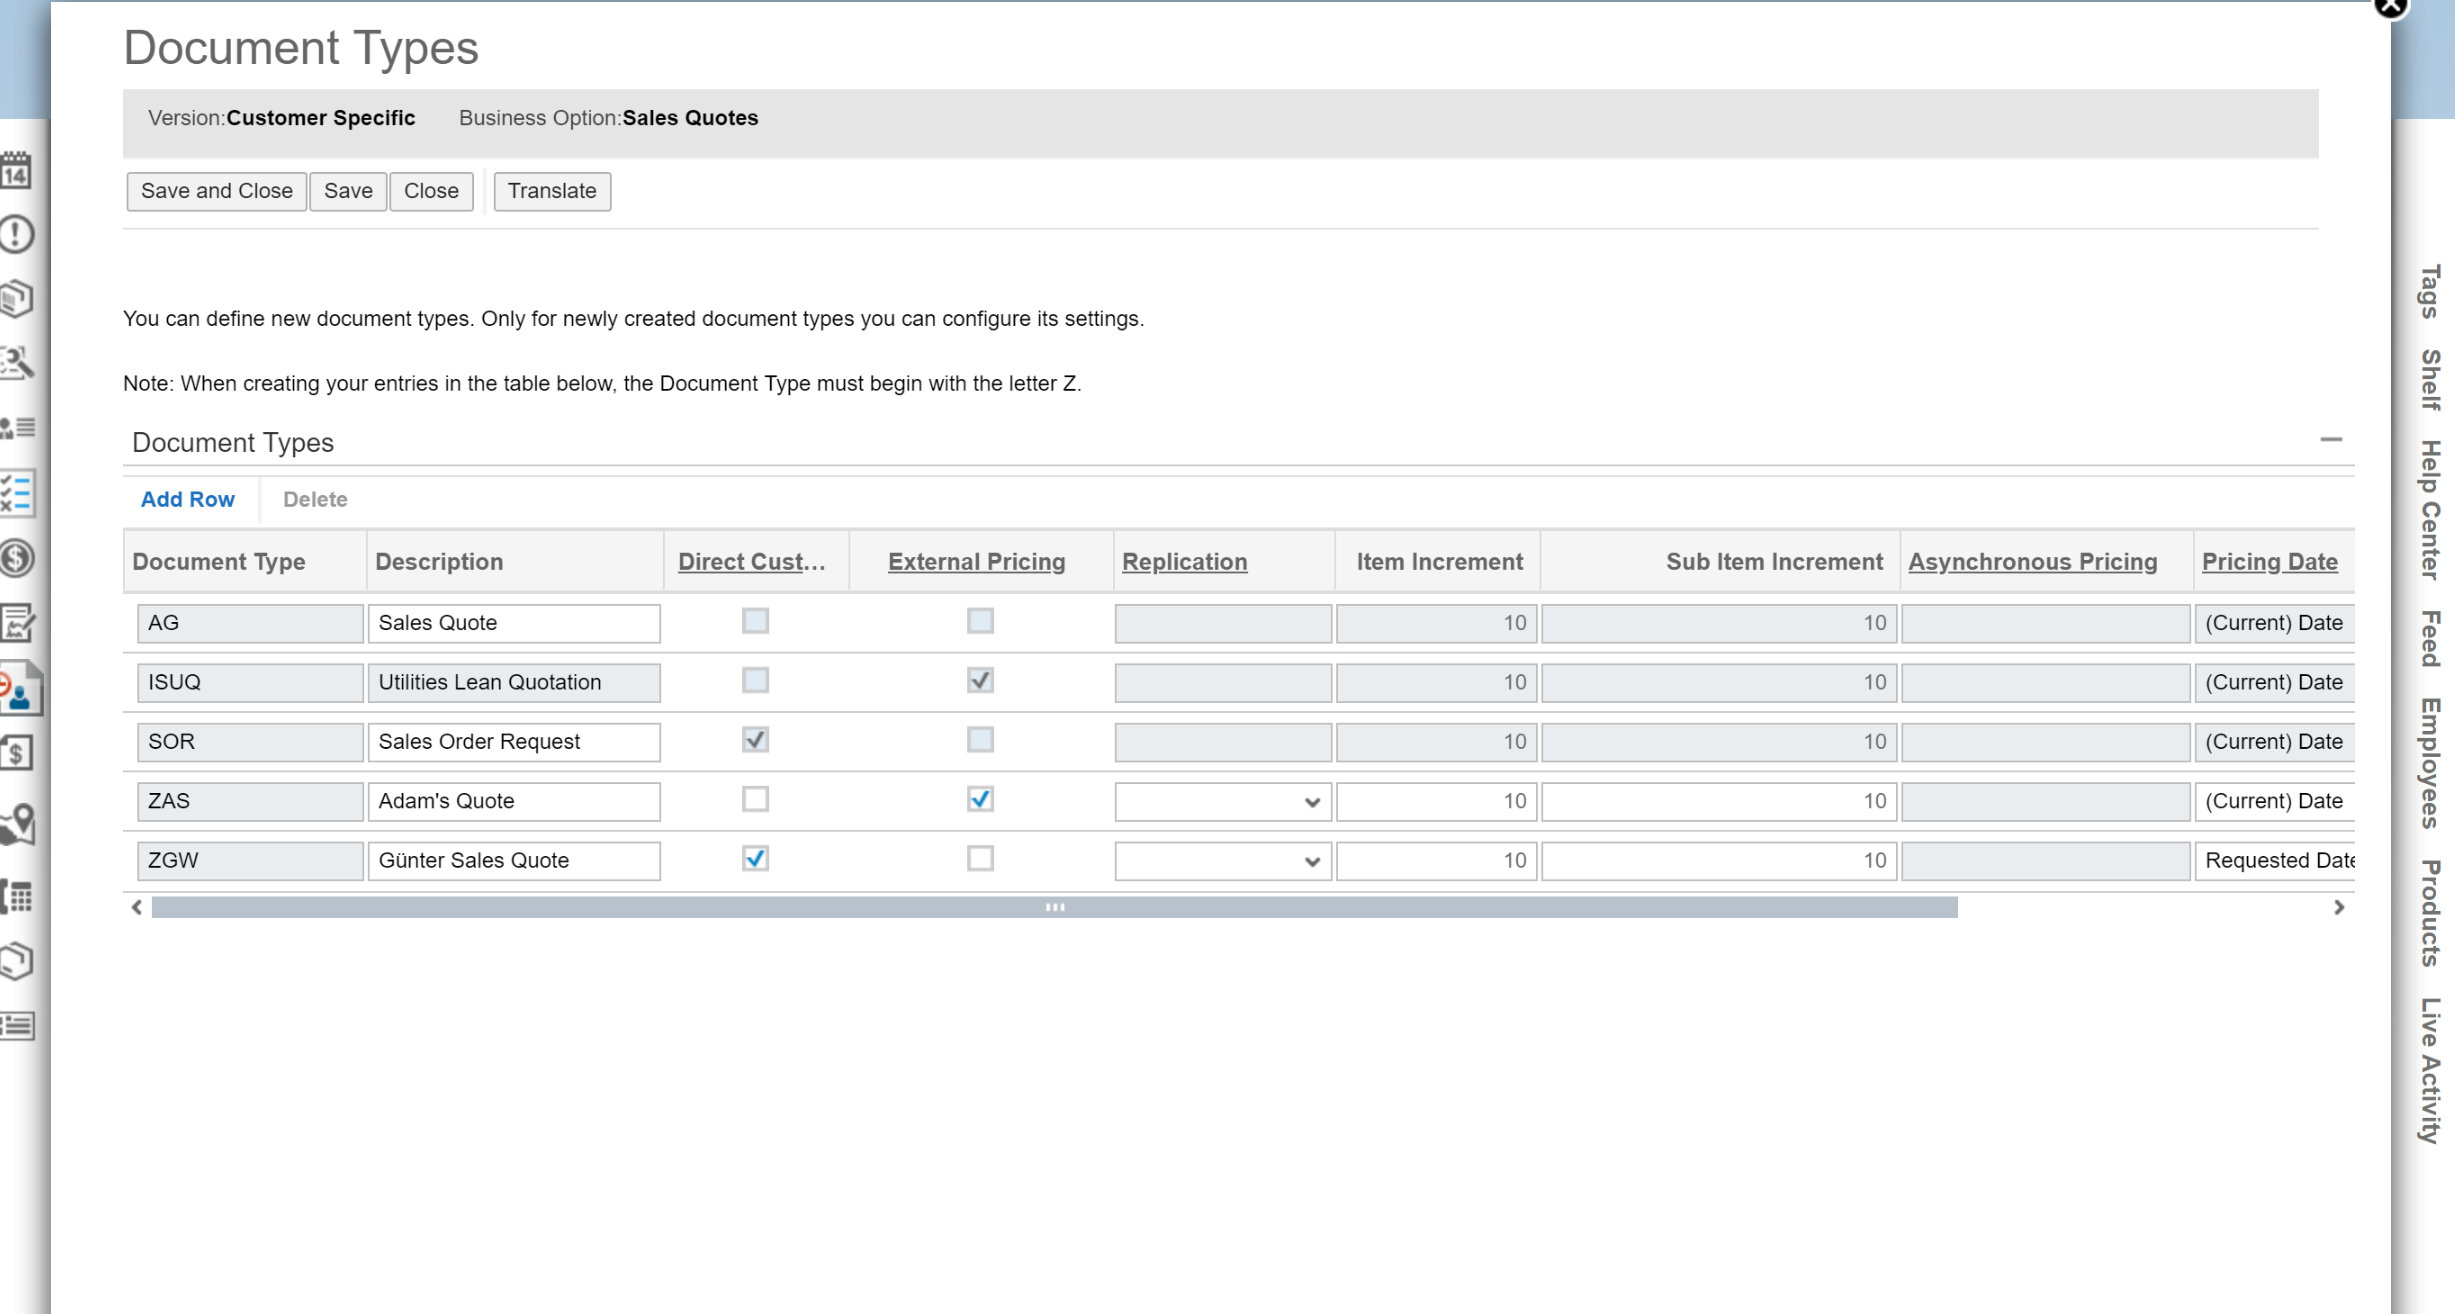 FAQ for Sales Quotes in SAP Cloud for Customer | SAP Blogs